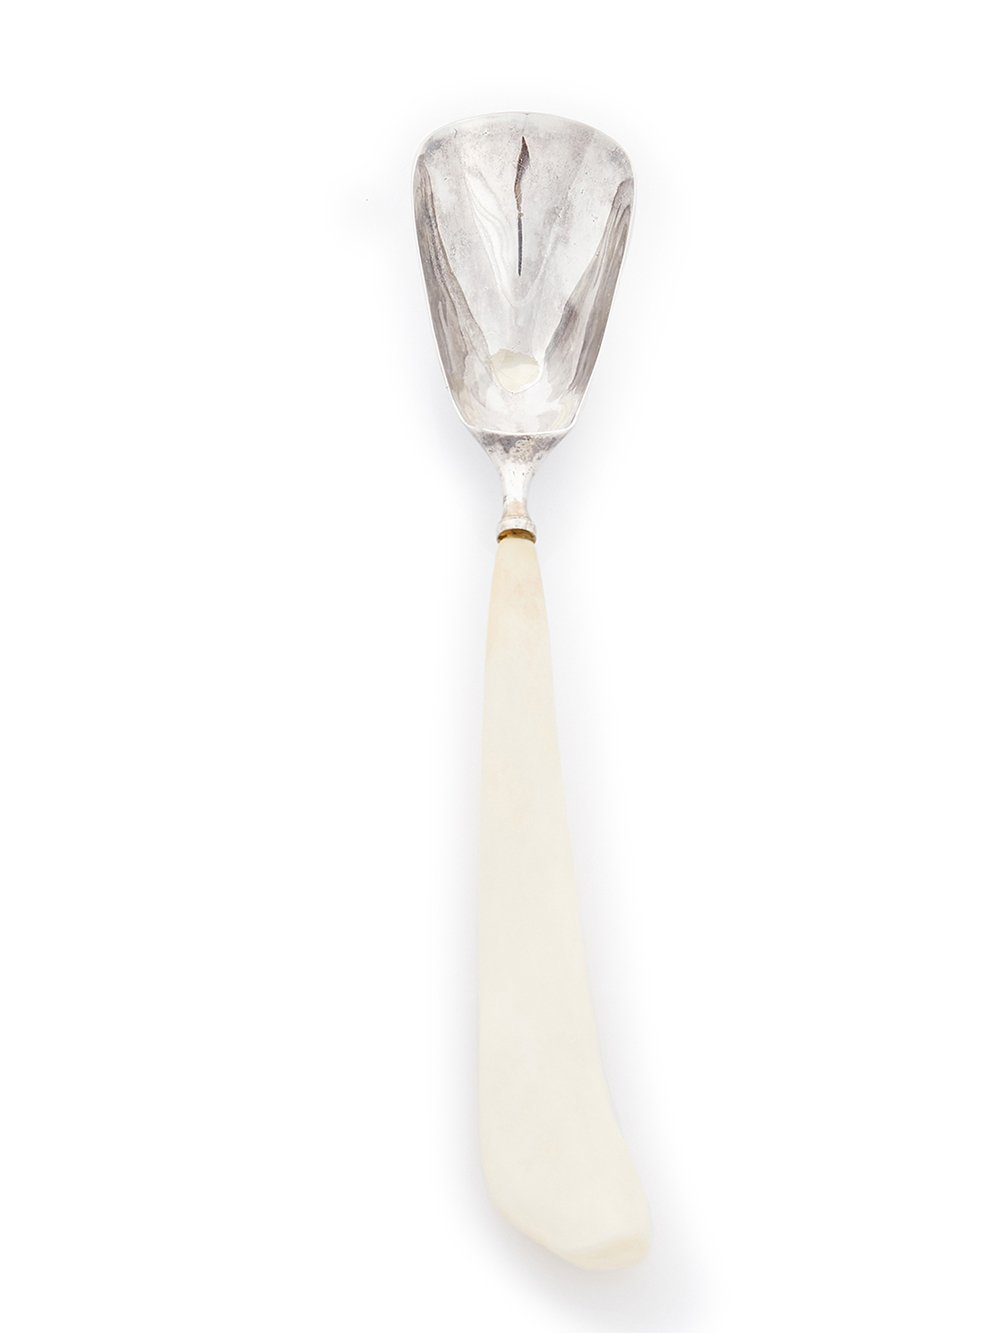 SERVING SPOON image